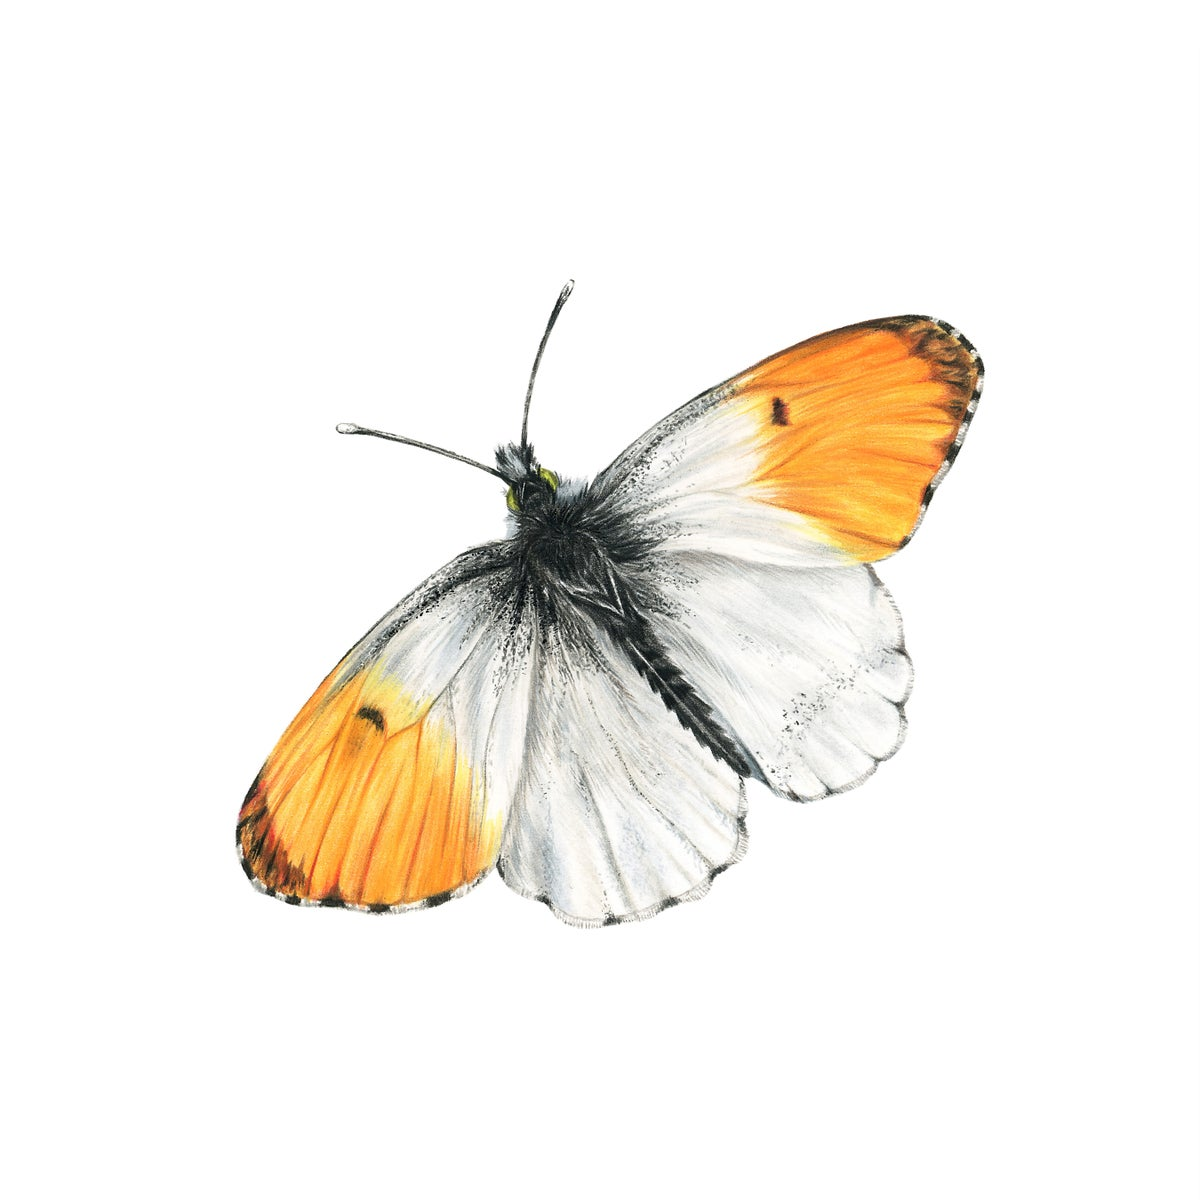 Image of Orange Tip Butterfly - Limited Edition Giclee Print